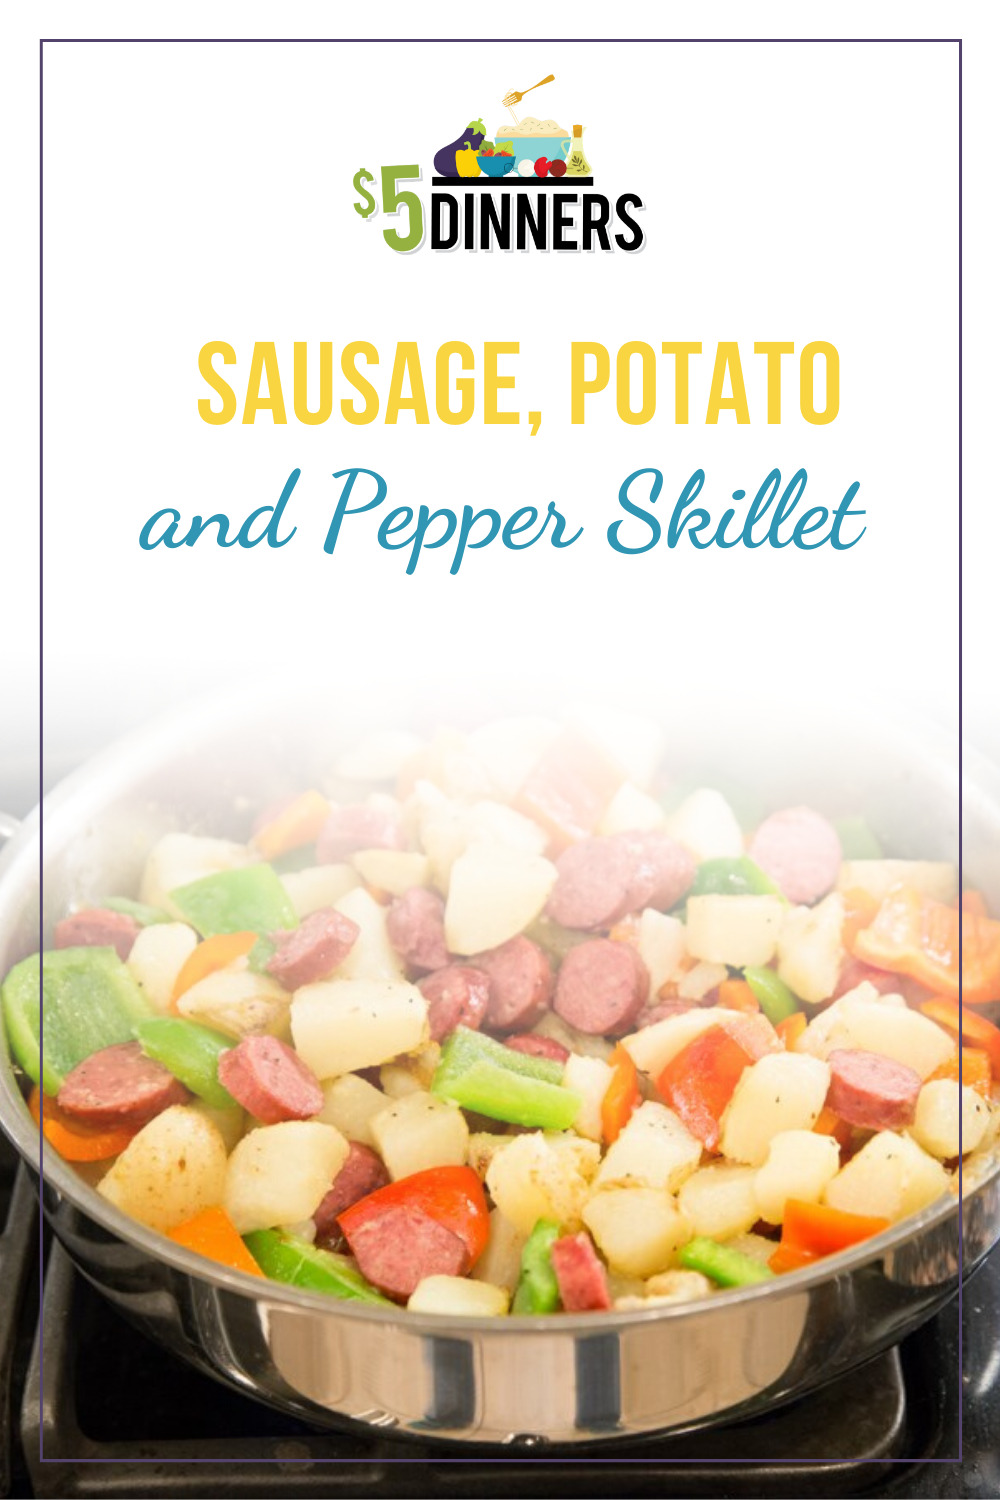 sausage, potato, and pepper skillet